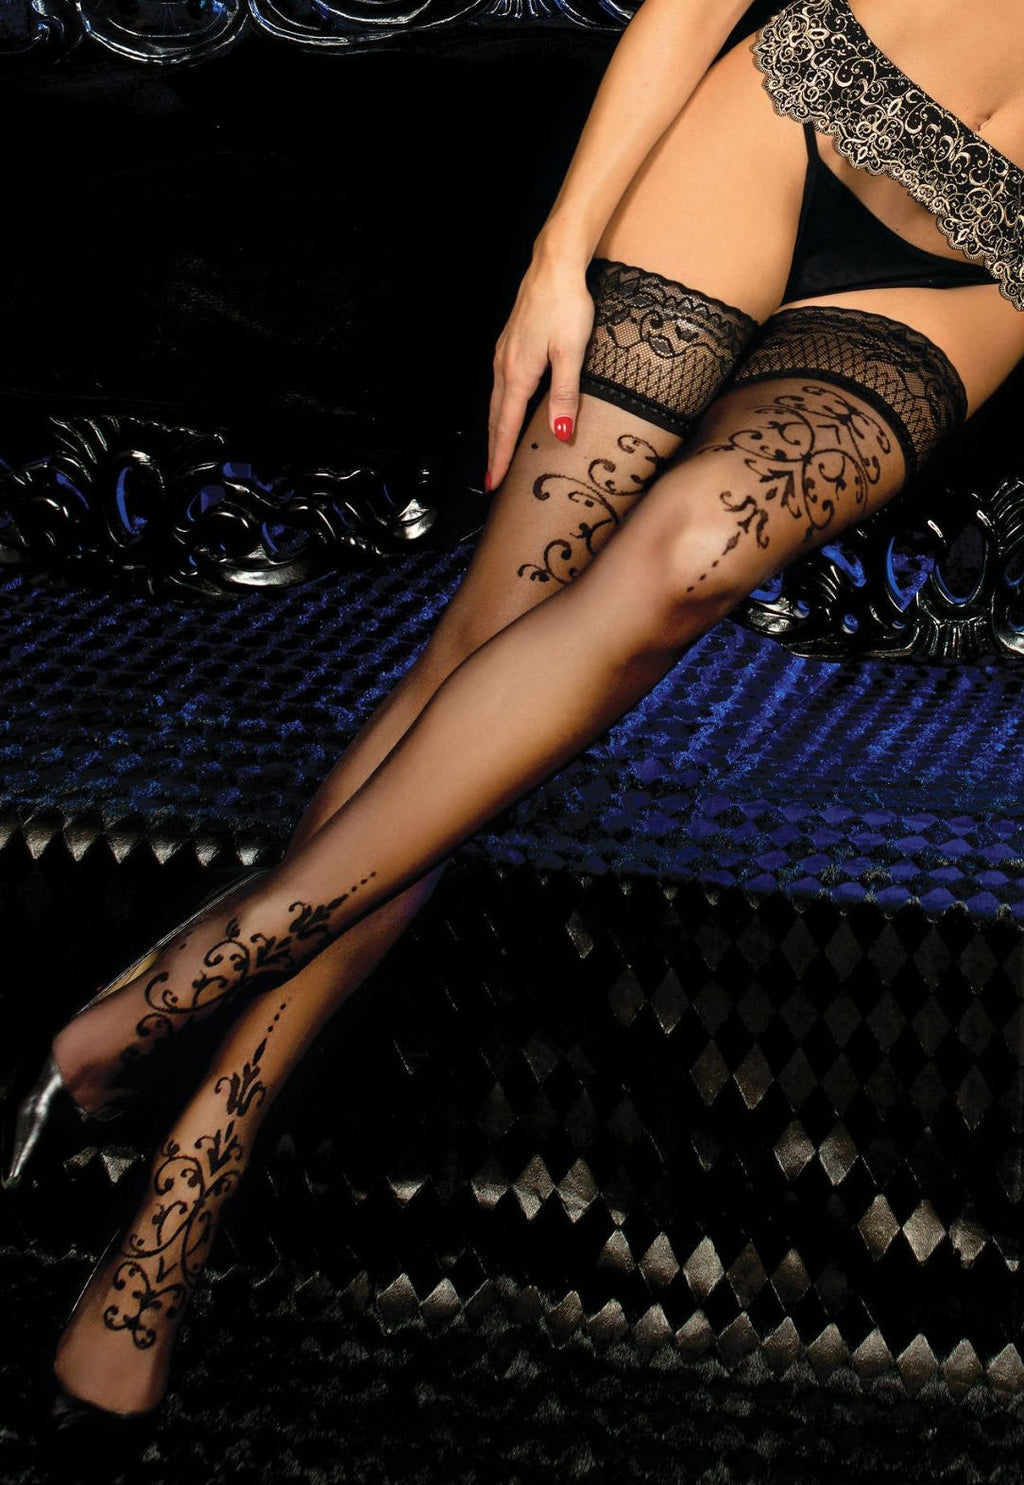 Ballerina 447 Sheer Hold-Ups with Double Baroque Design